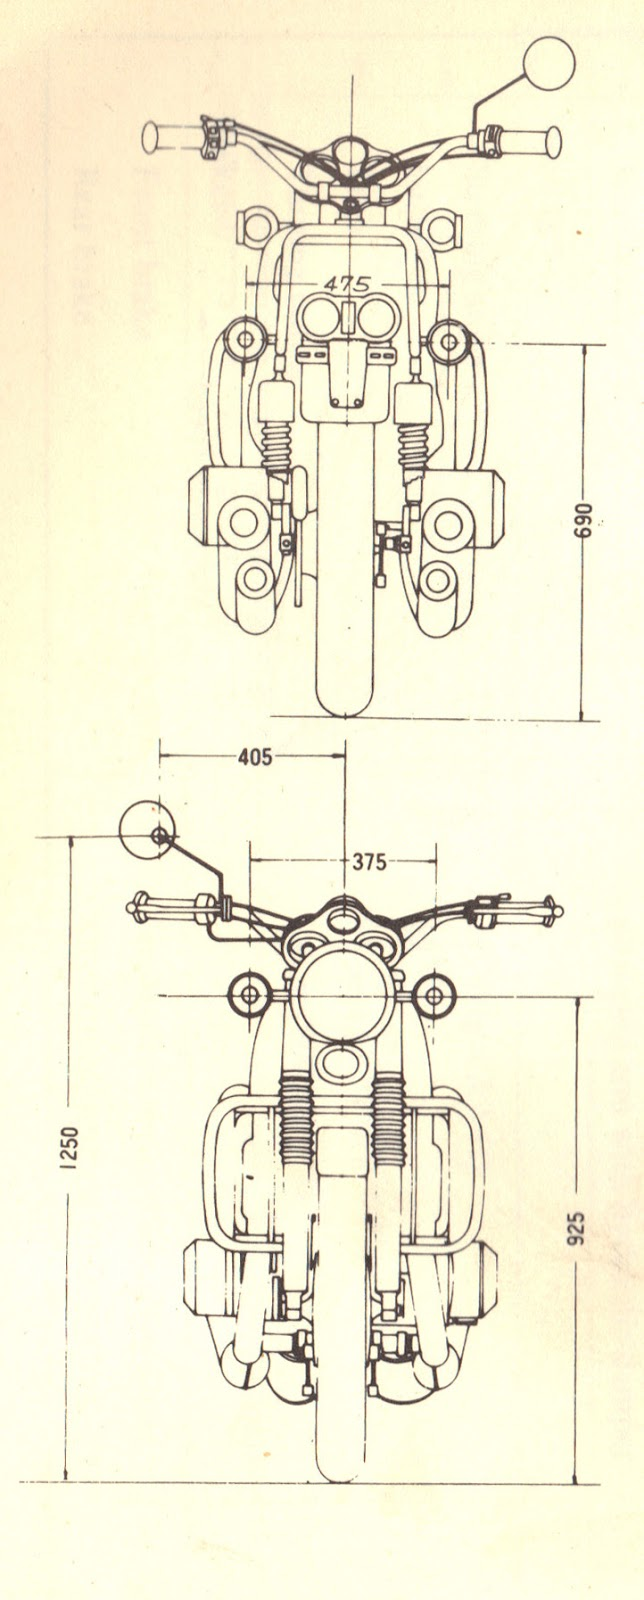 Progress Is Fine But Its Gone On For Too Long January 2013 Dim Engine Diagram From The 1972 Suzuki Water Buffalo Manual That One Wide Motor And They Ignored Fact In Dimensioning Locating Center Of Mirror